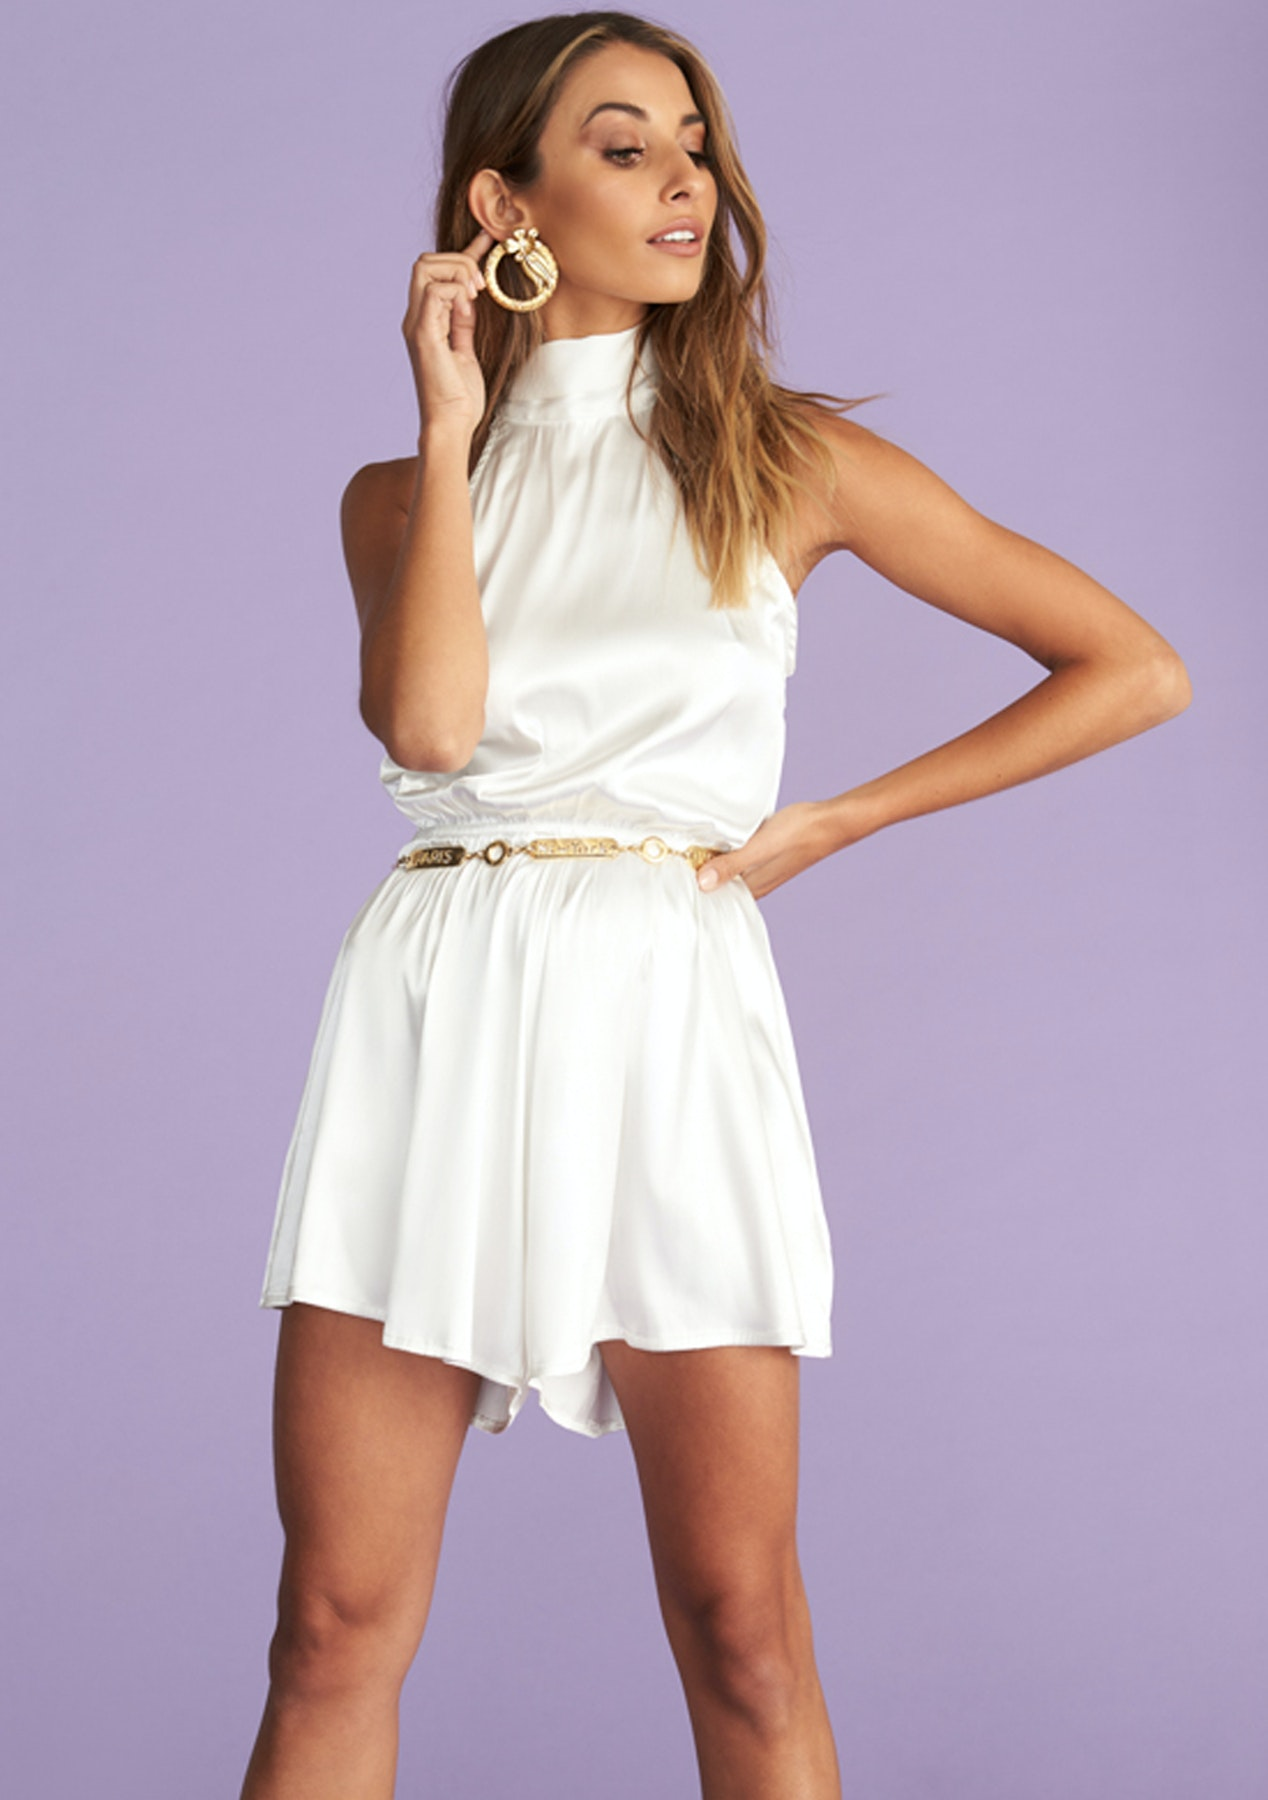 ba4f40ed2d158 Lioness - High Expectations Romper - White